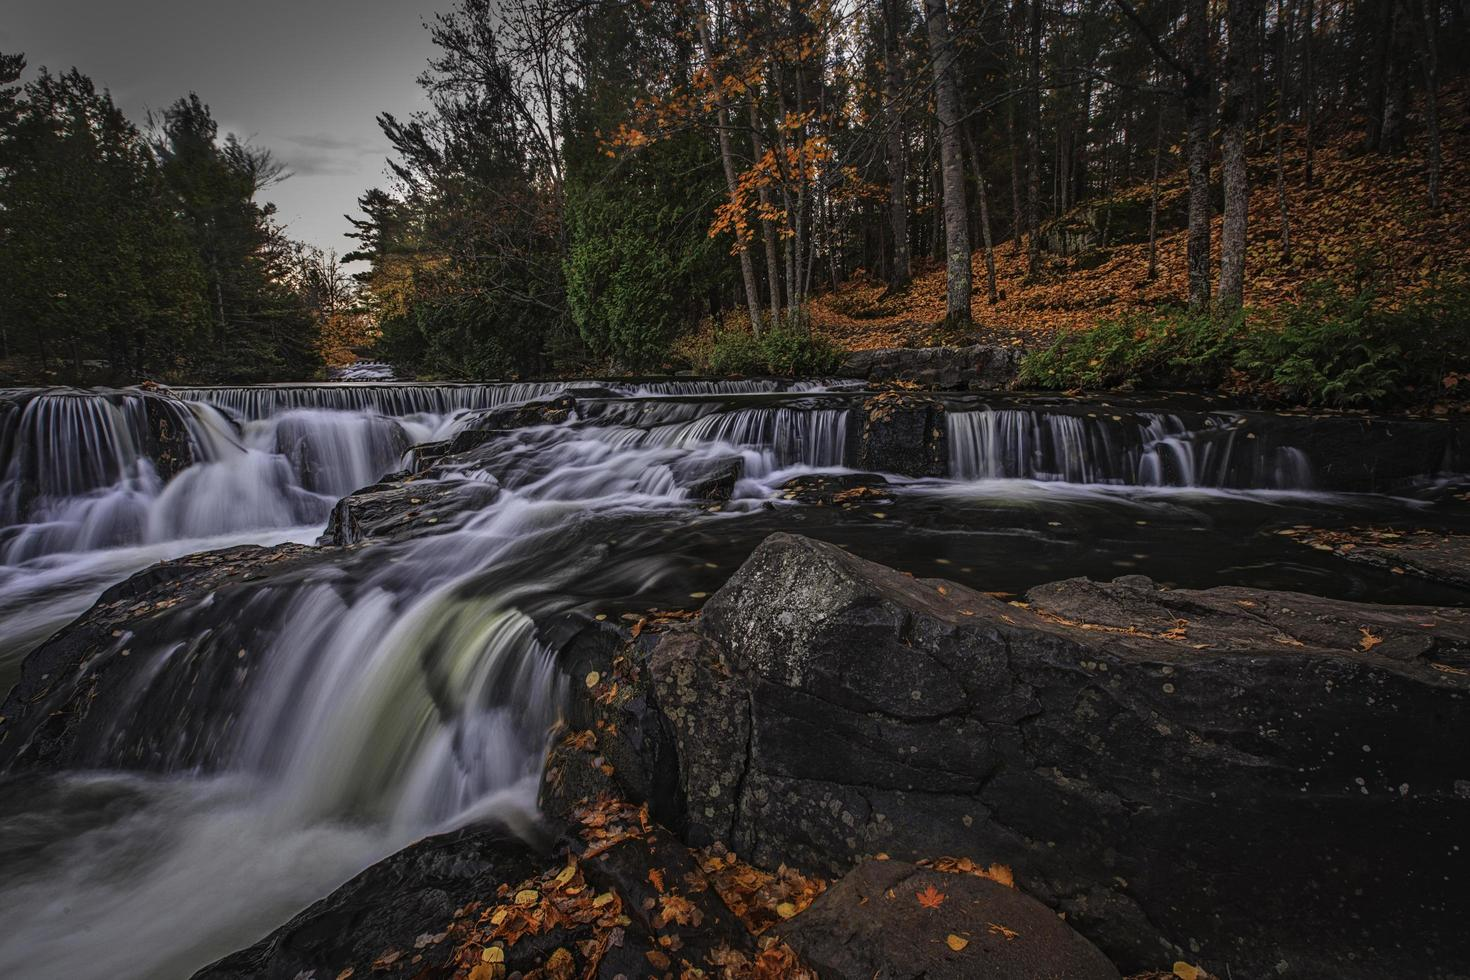 Flowing river in a forest photo